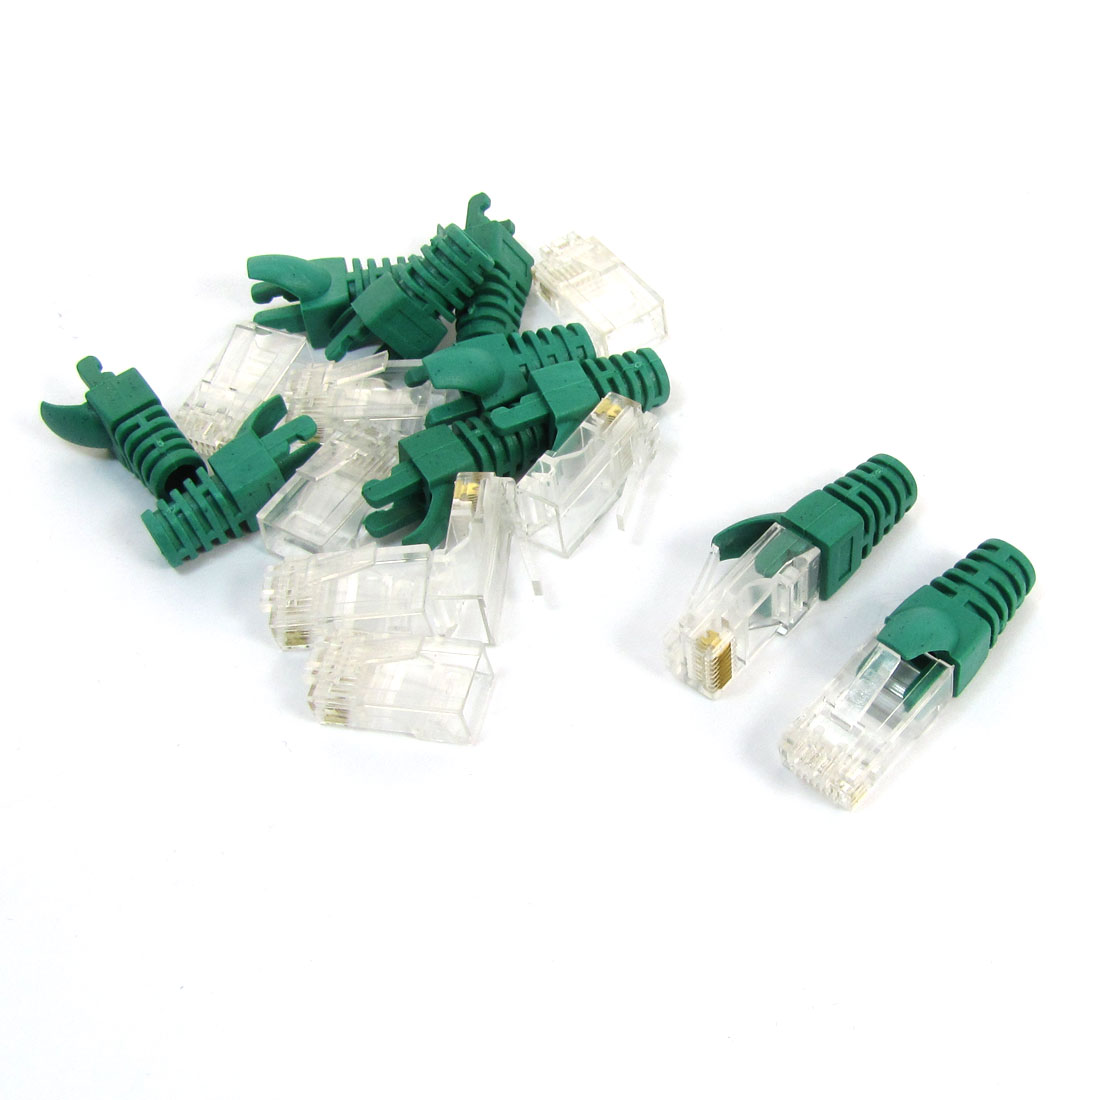 10Pcs Green 8P8C Cat6 Patch RJ45 Crystal Cover Modular Boot Cap